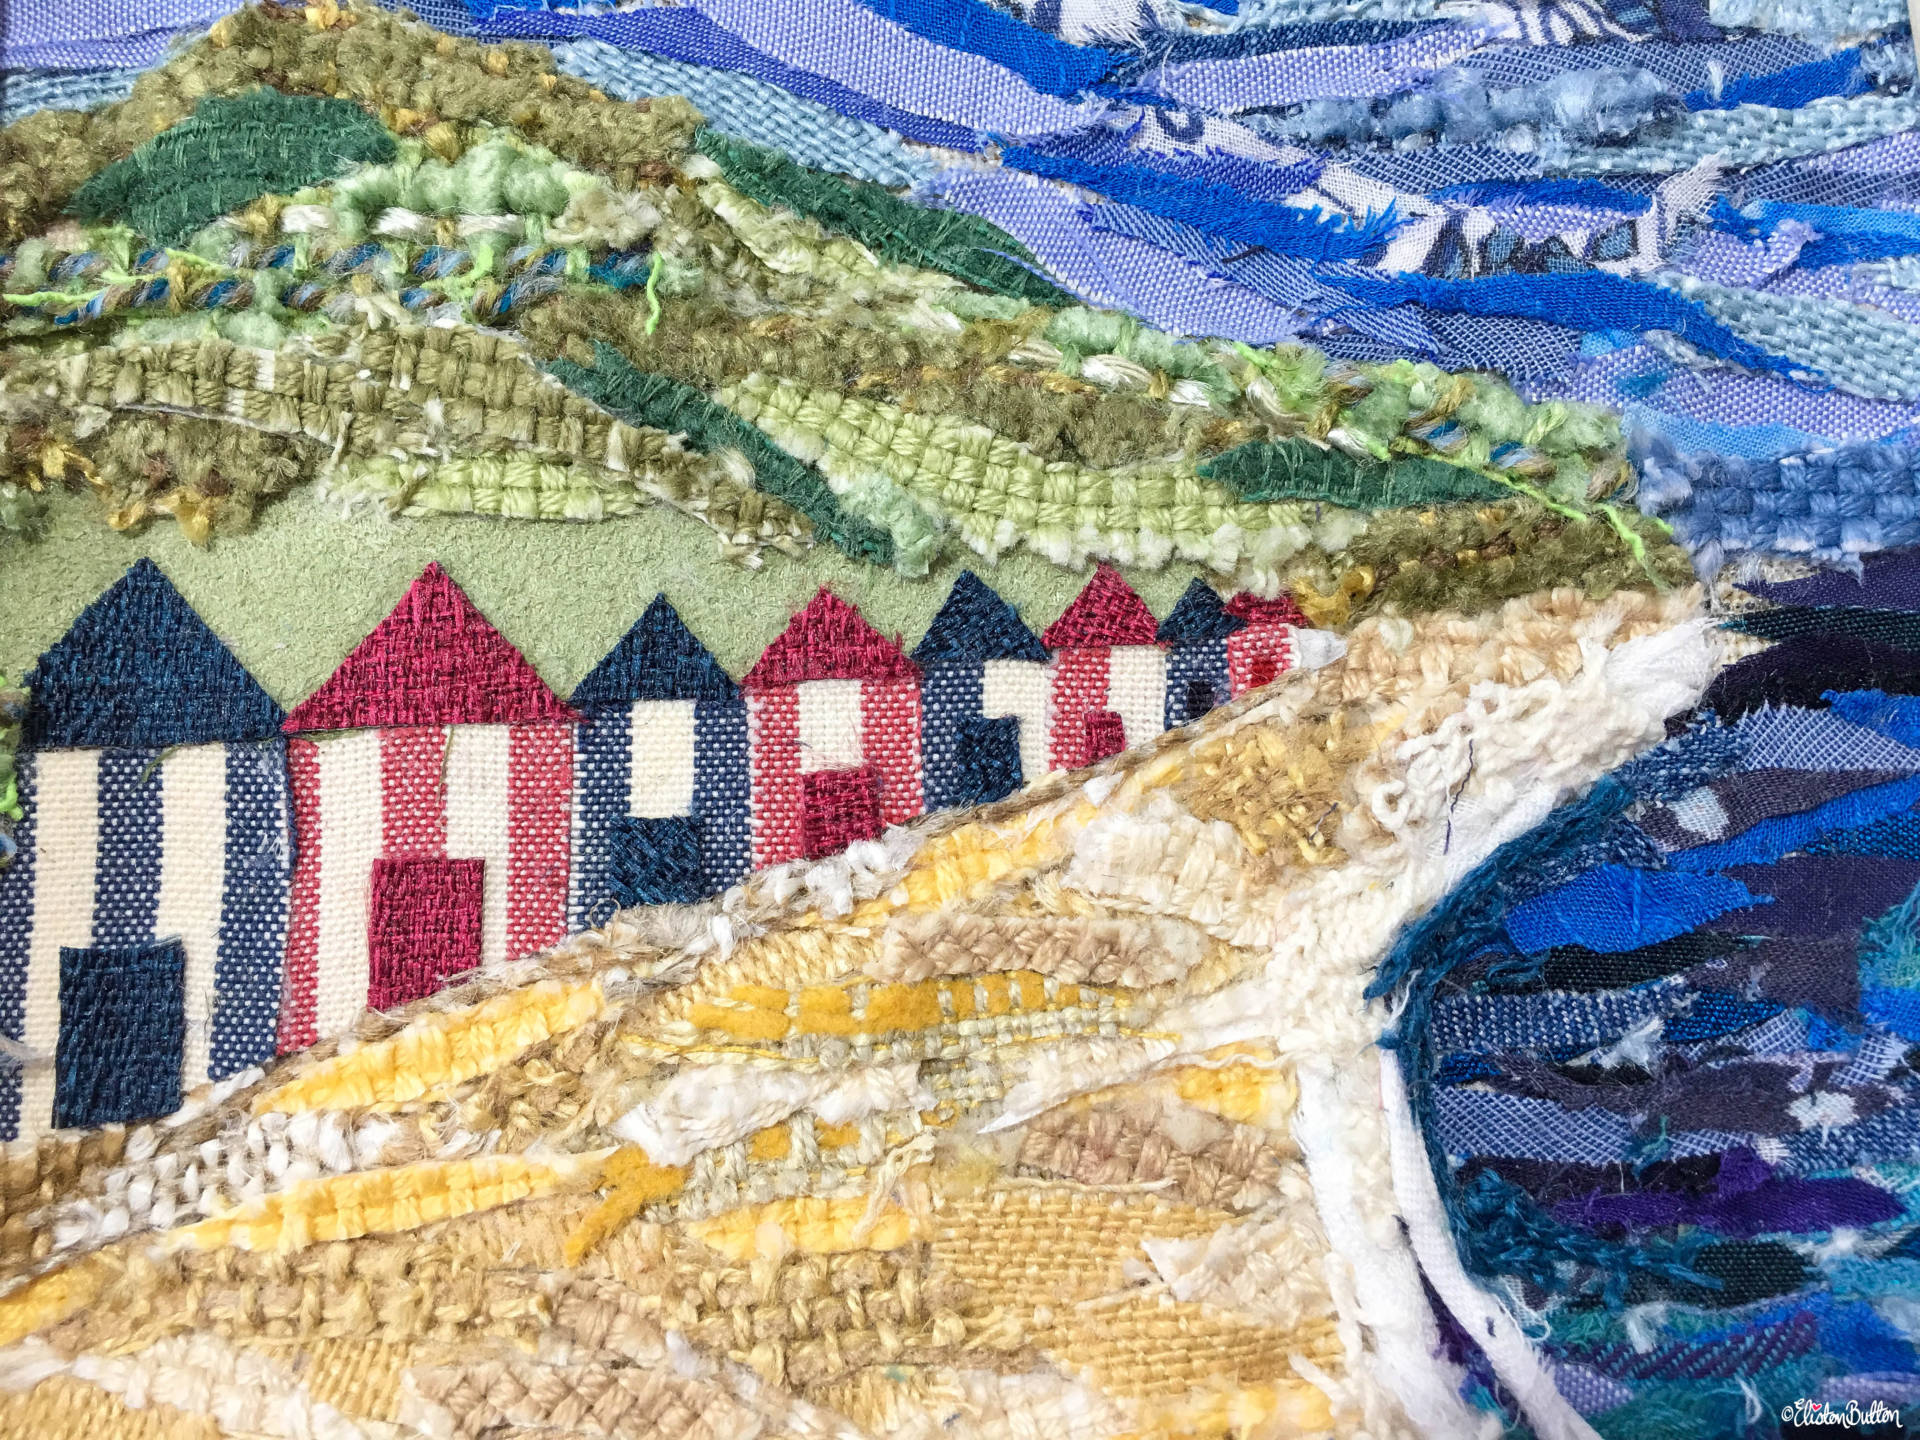 Original 'Beach Huts by the Sea' Original Seaside Fabric Collage by Eliston Button - Fabric Texture Close Up - Create 30 – No. 16 & 17 – Seaside Fabric Collages at www.elistonbutton.com - Eliston Button - That Crafty Kid – Art, Design, Craft & Adventure.